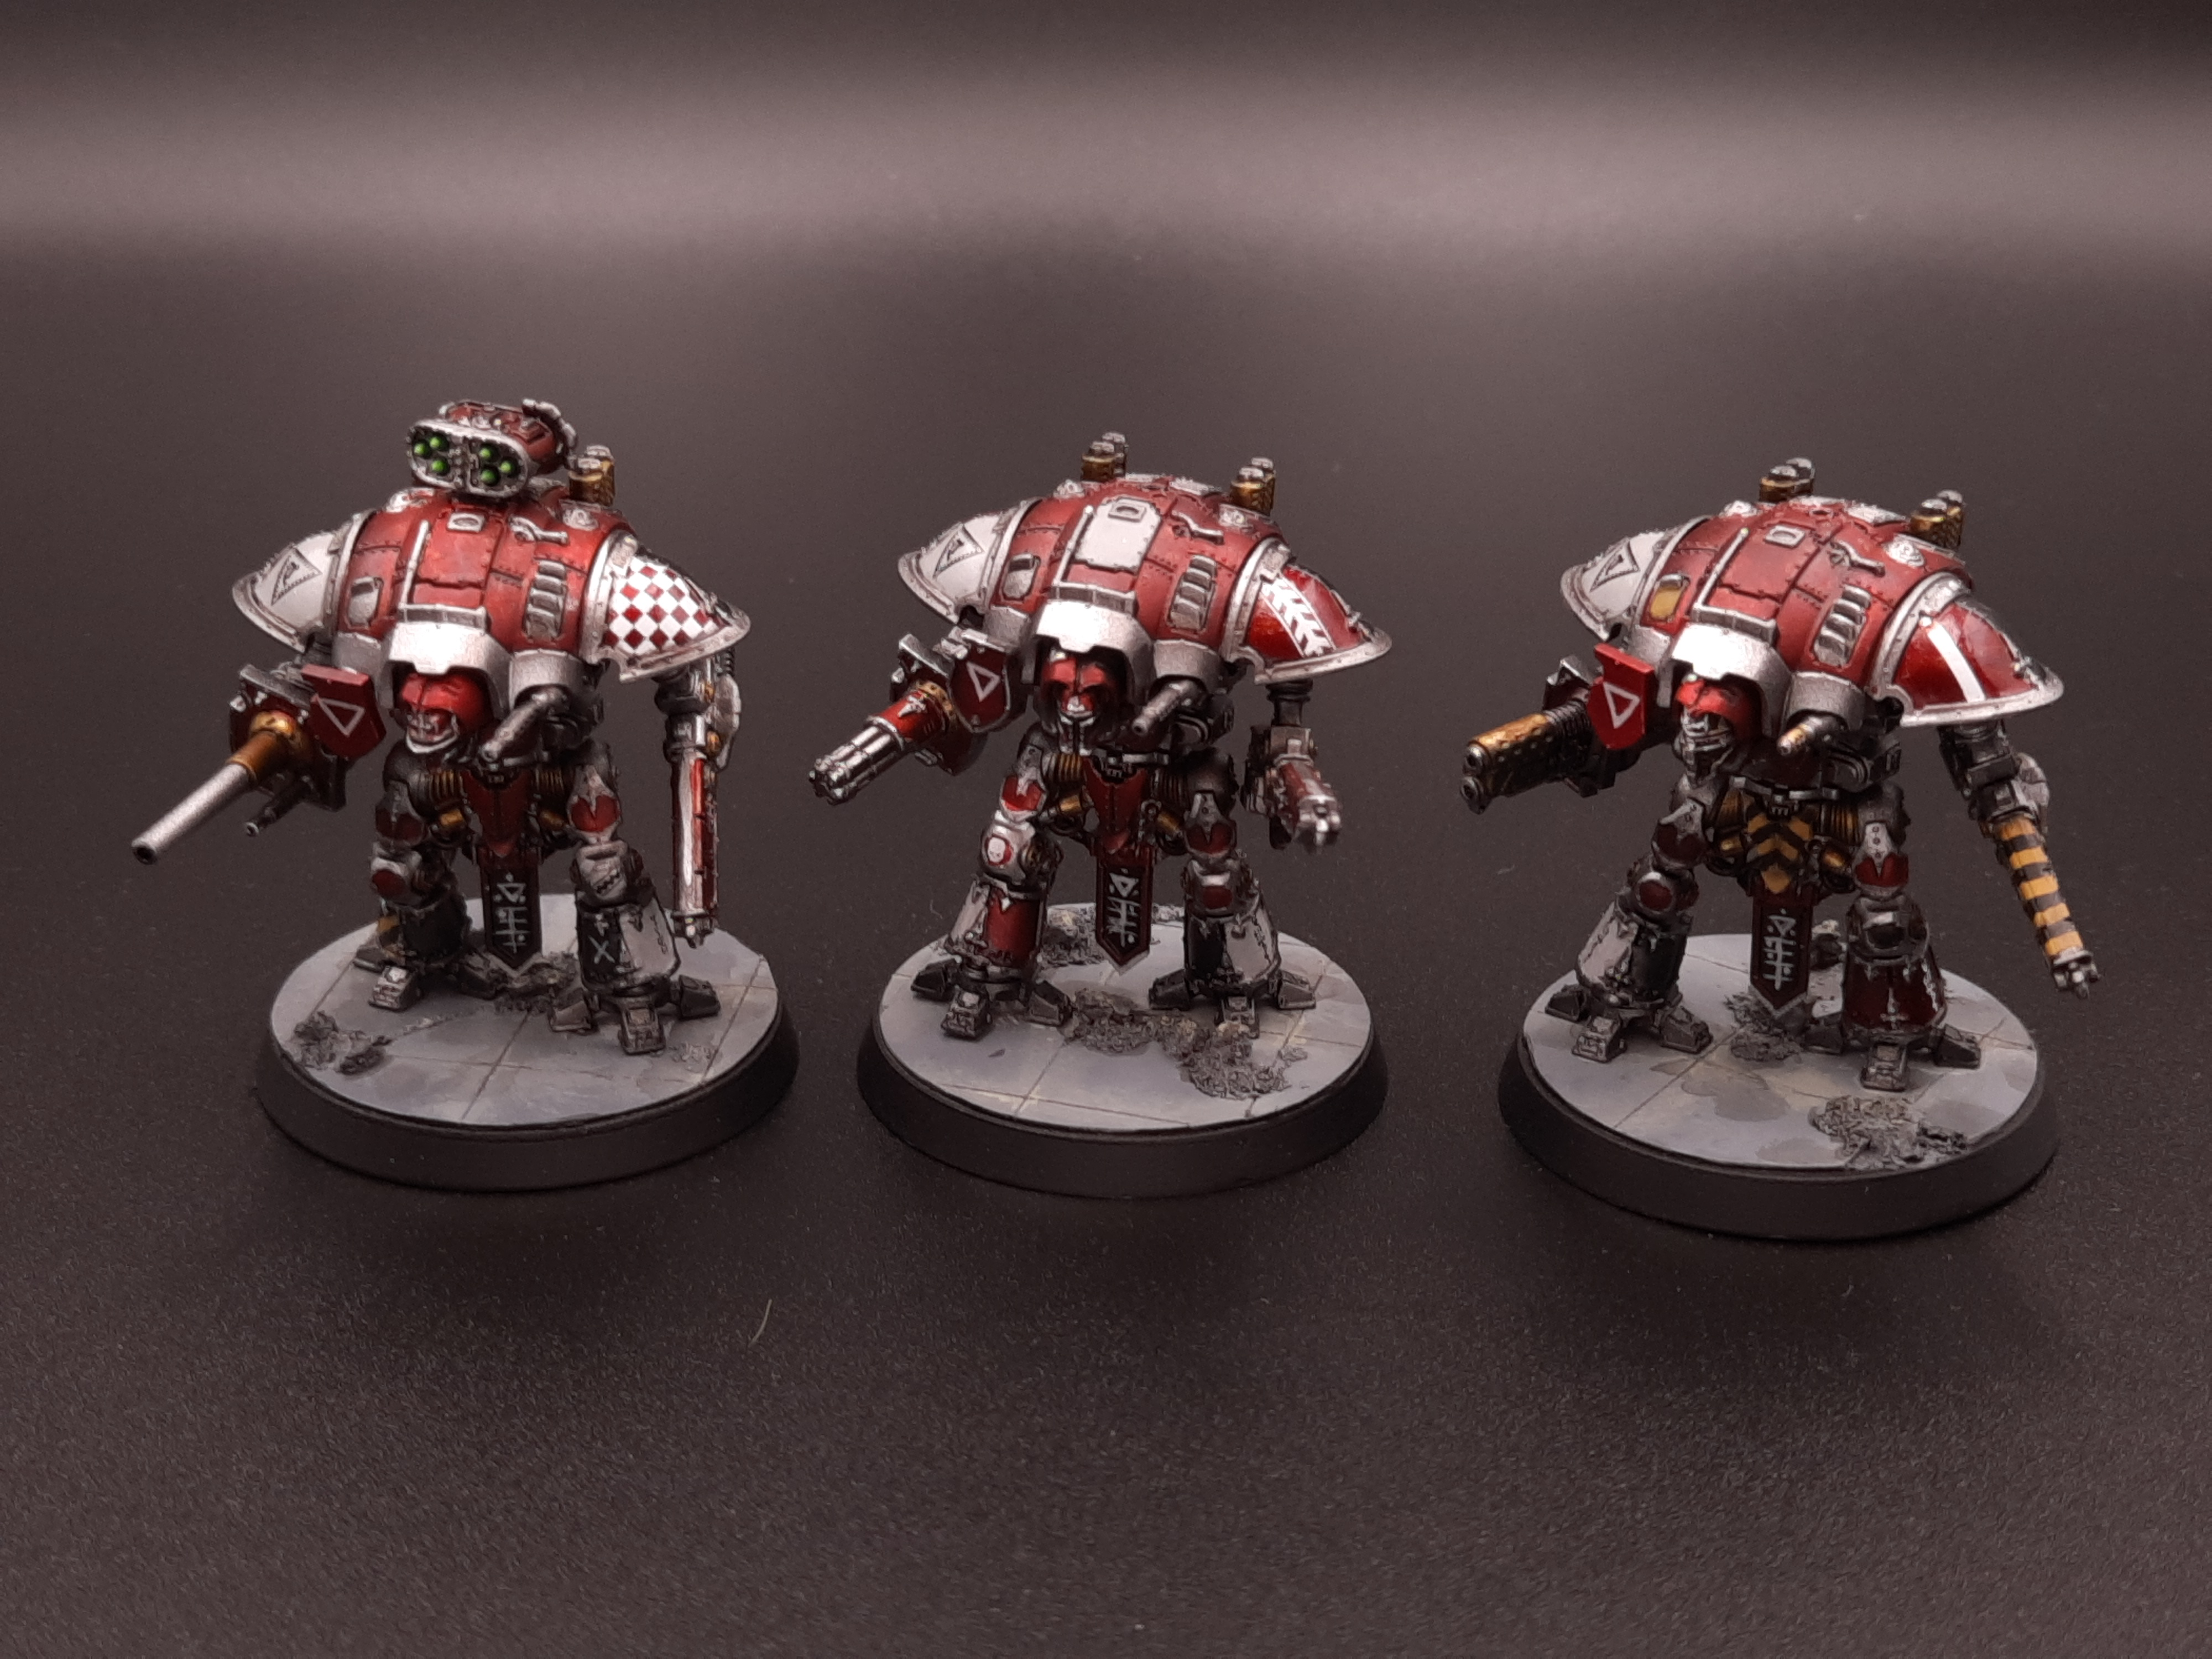 Three model mech suits in dark red and silver.